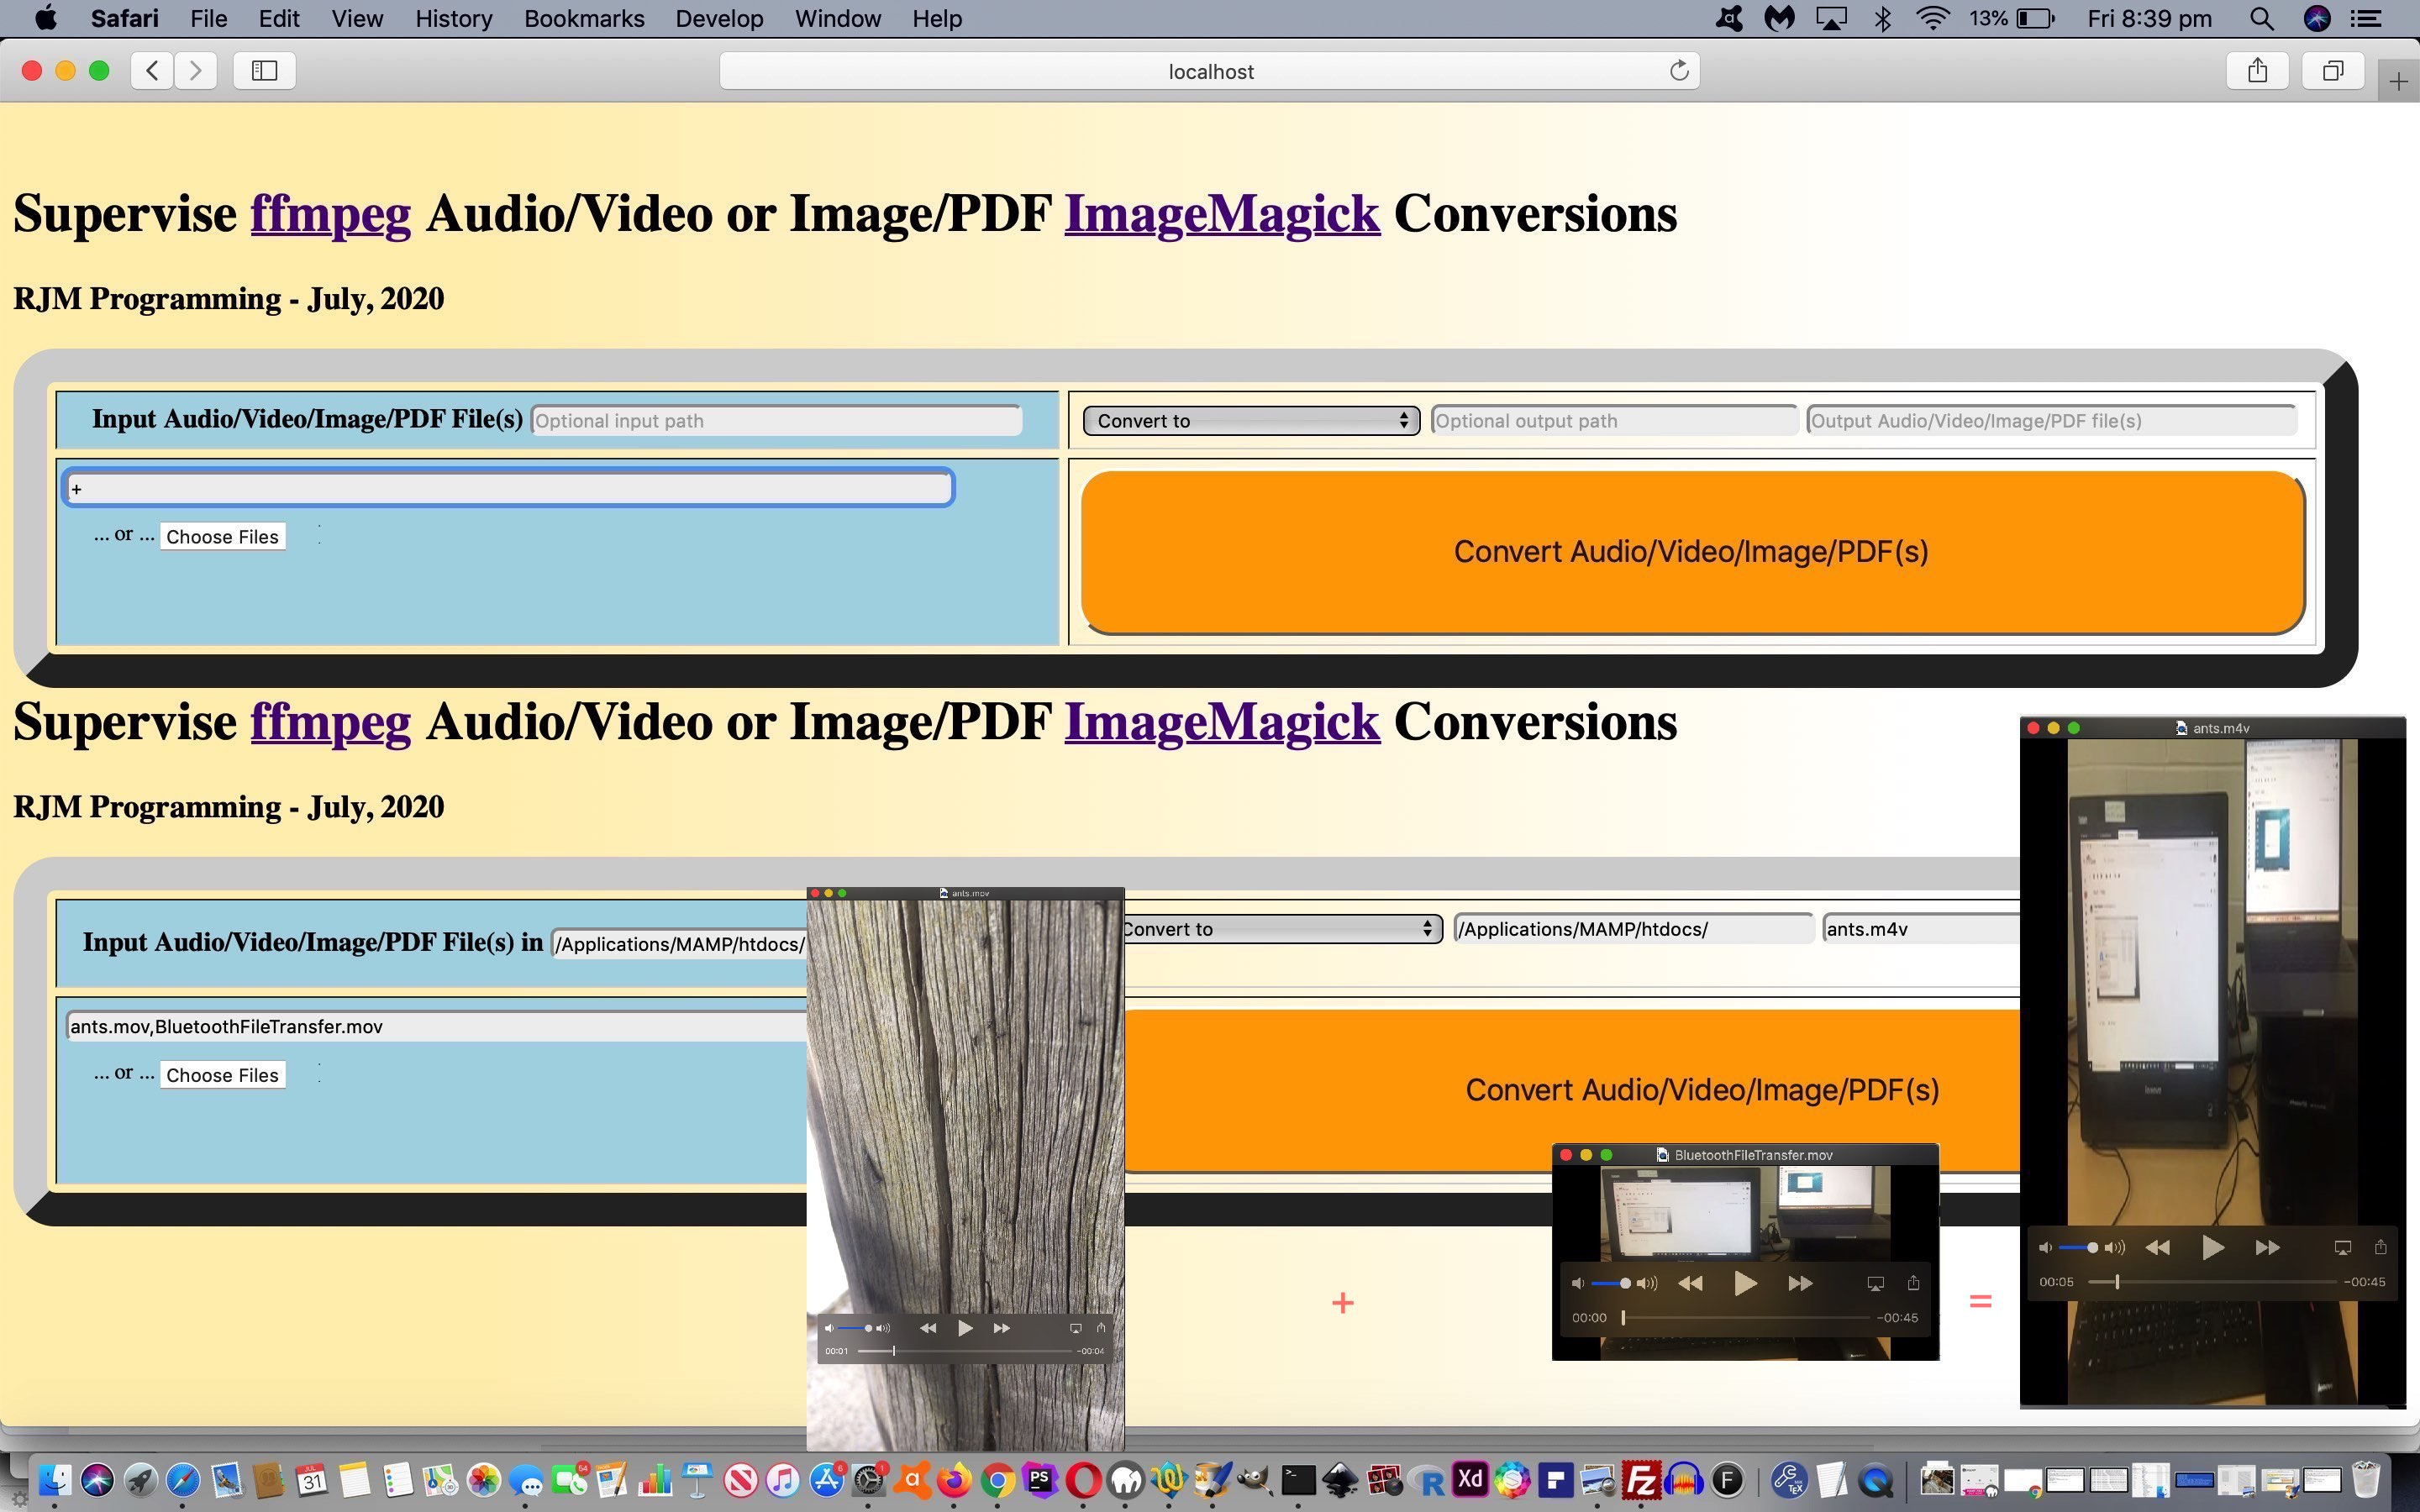 Image/PDF and Audio/Video Supervised Concatenate Tutorial